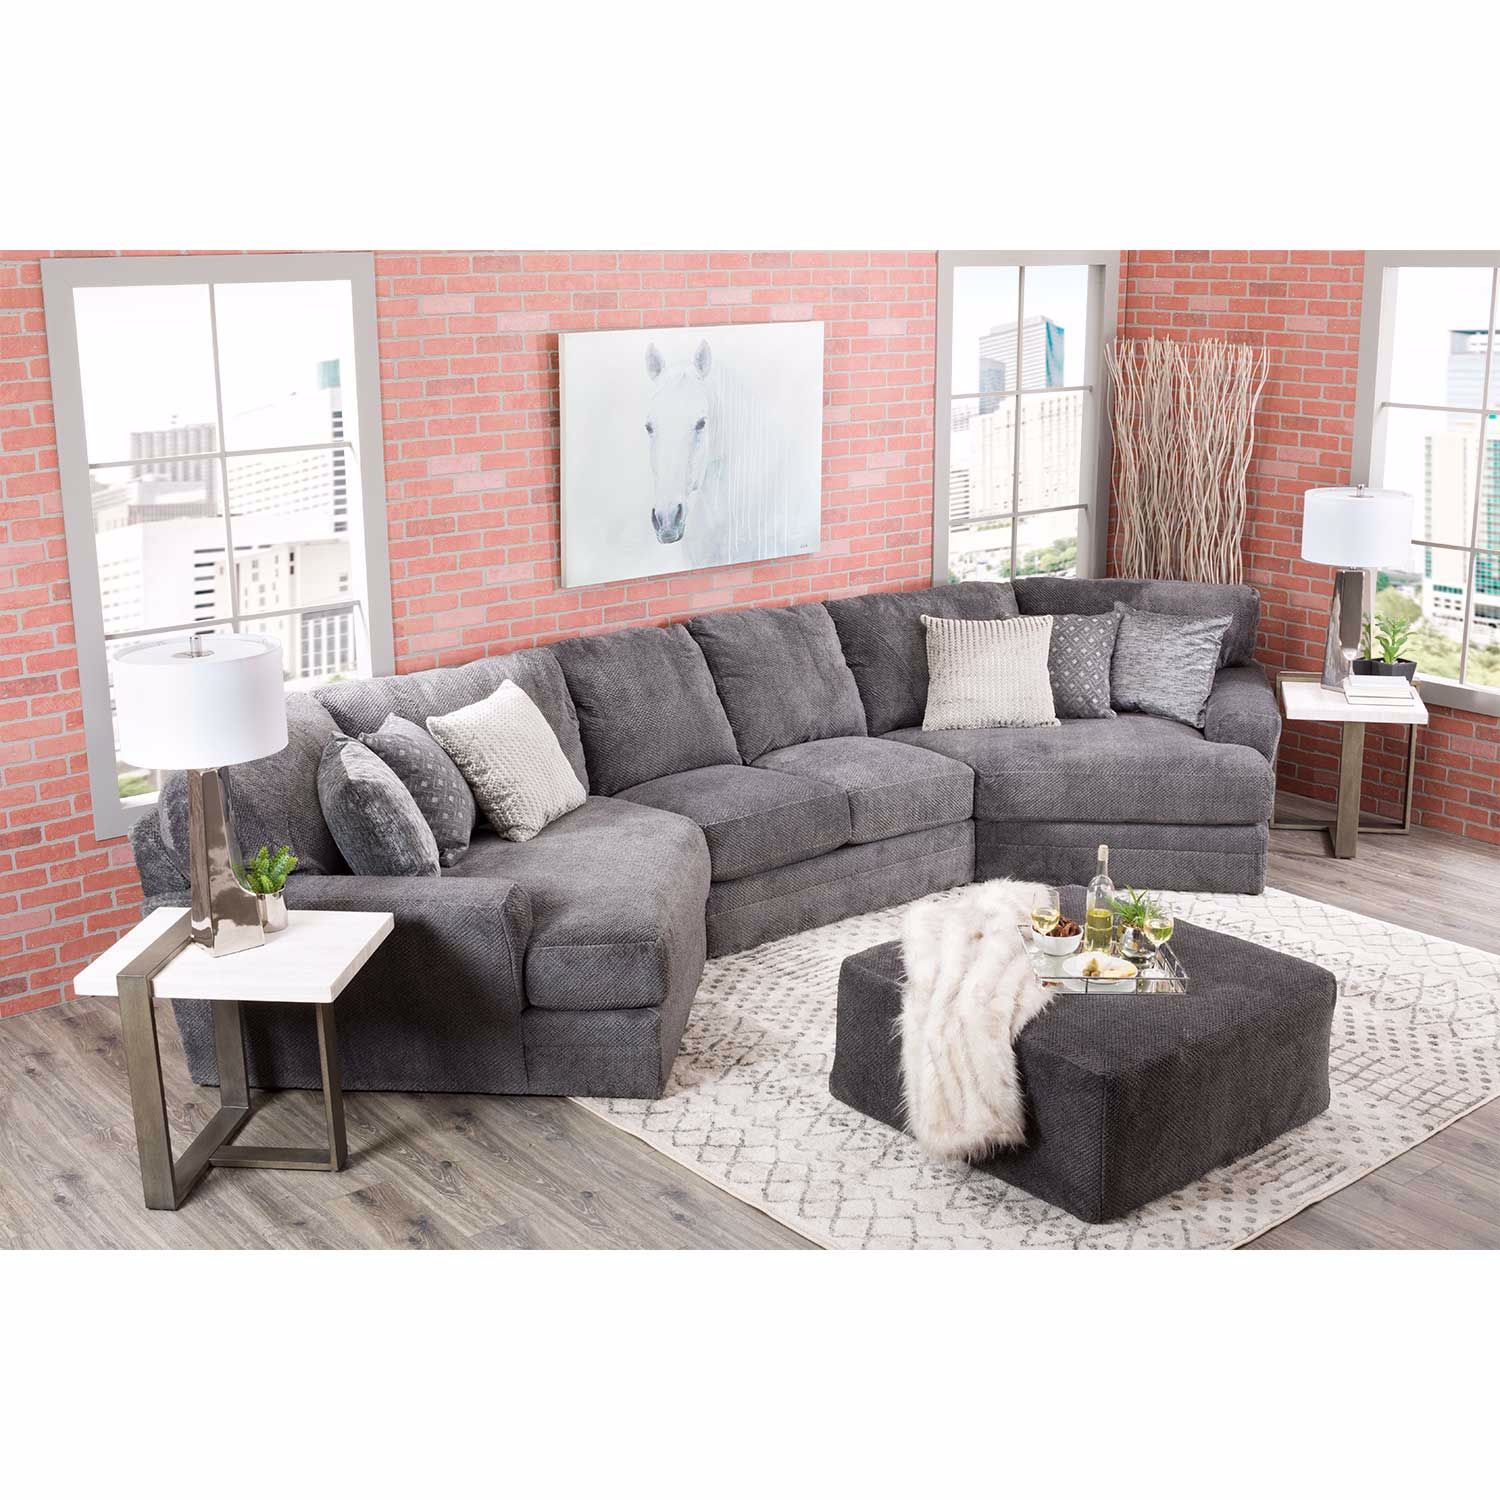 Picture of Mammoth 3 Piece Sectional with LAF and RAF Wedge